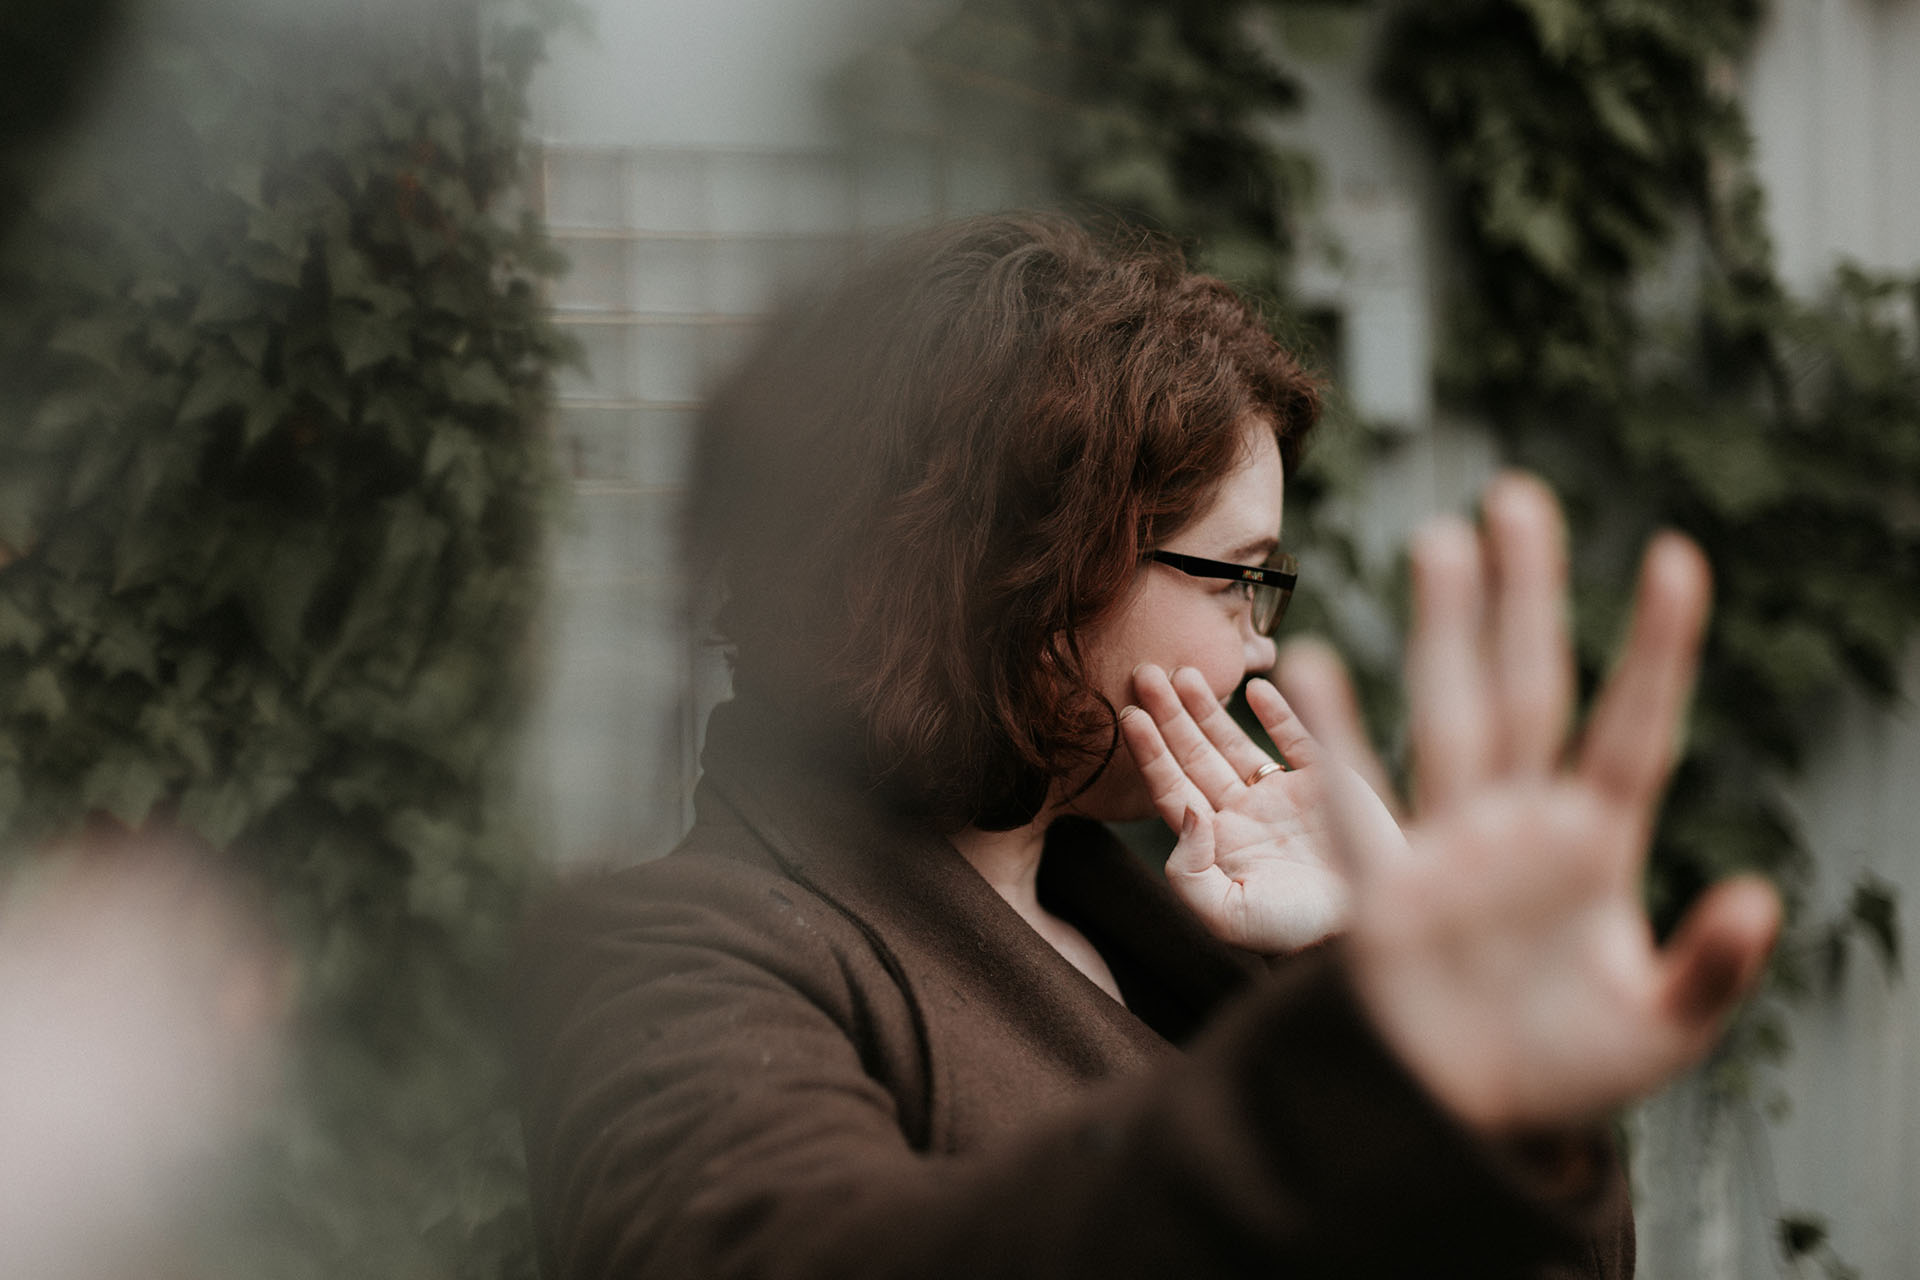 a woman putting her hand out and resisting an offer